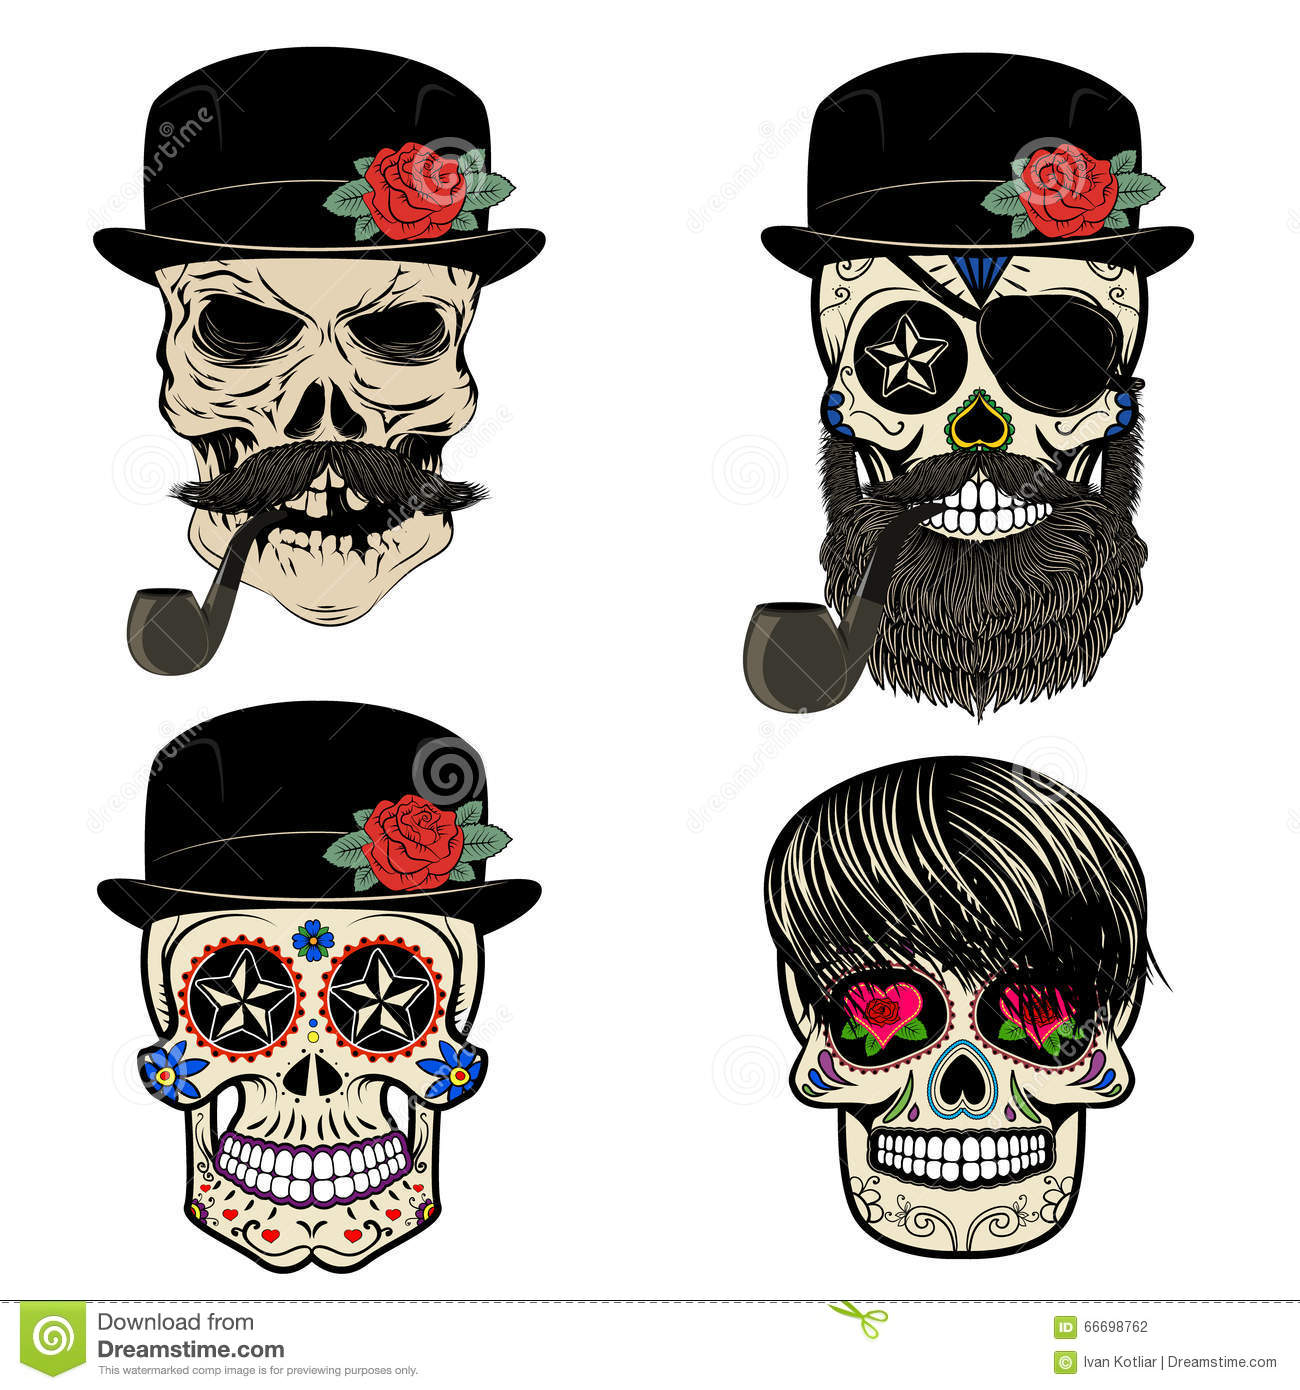 Skull With Beard And Smoking Pipe